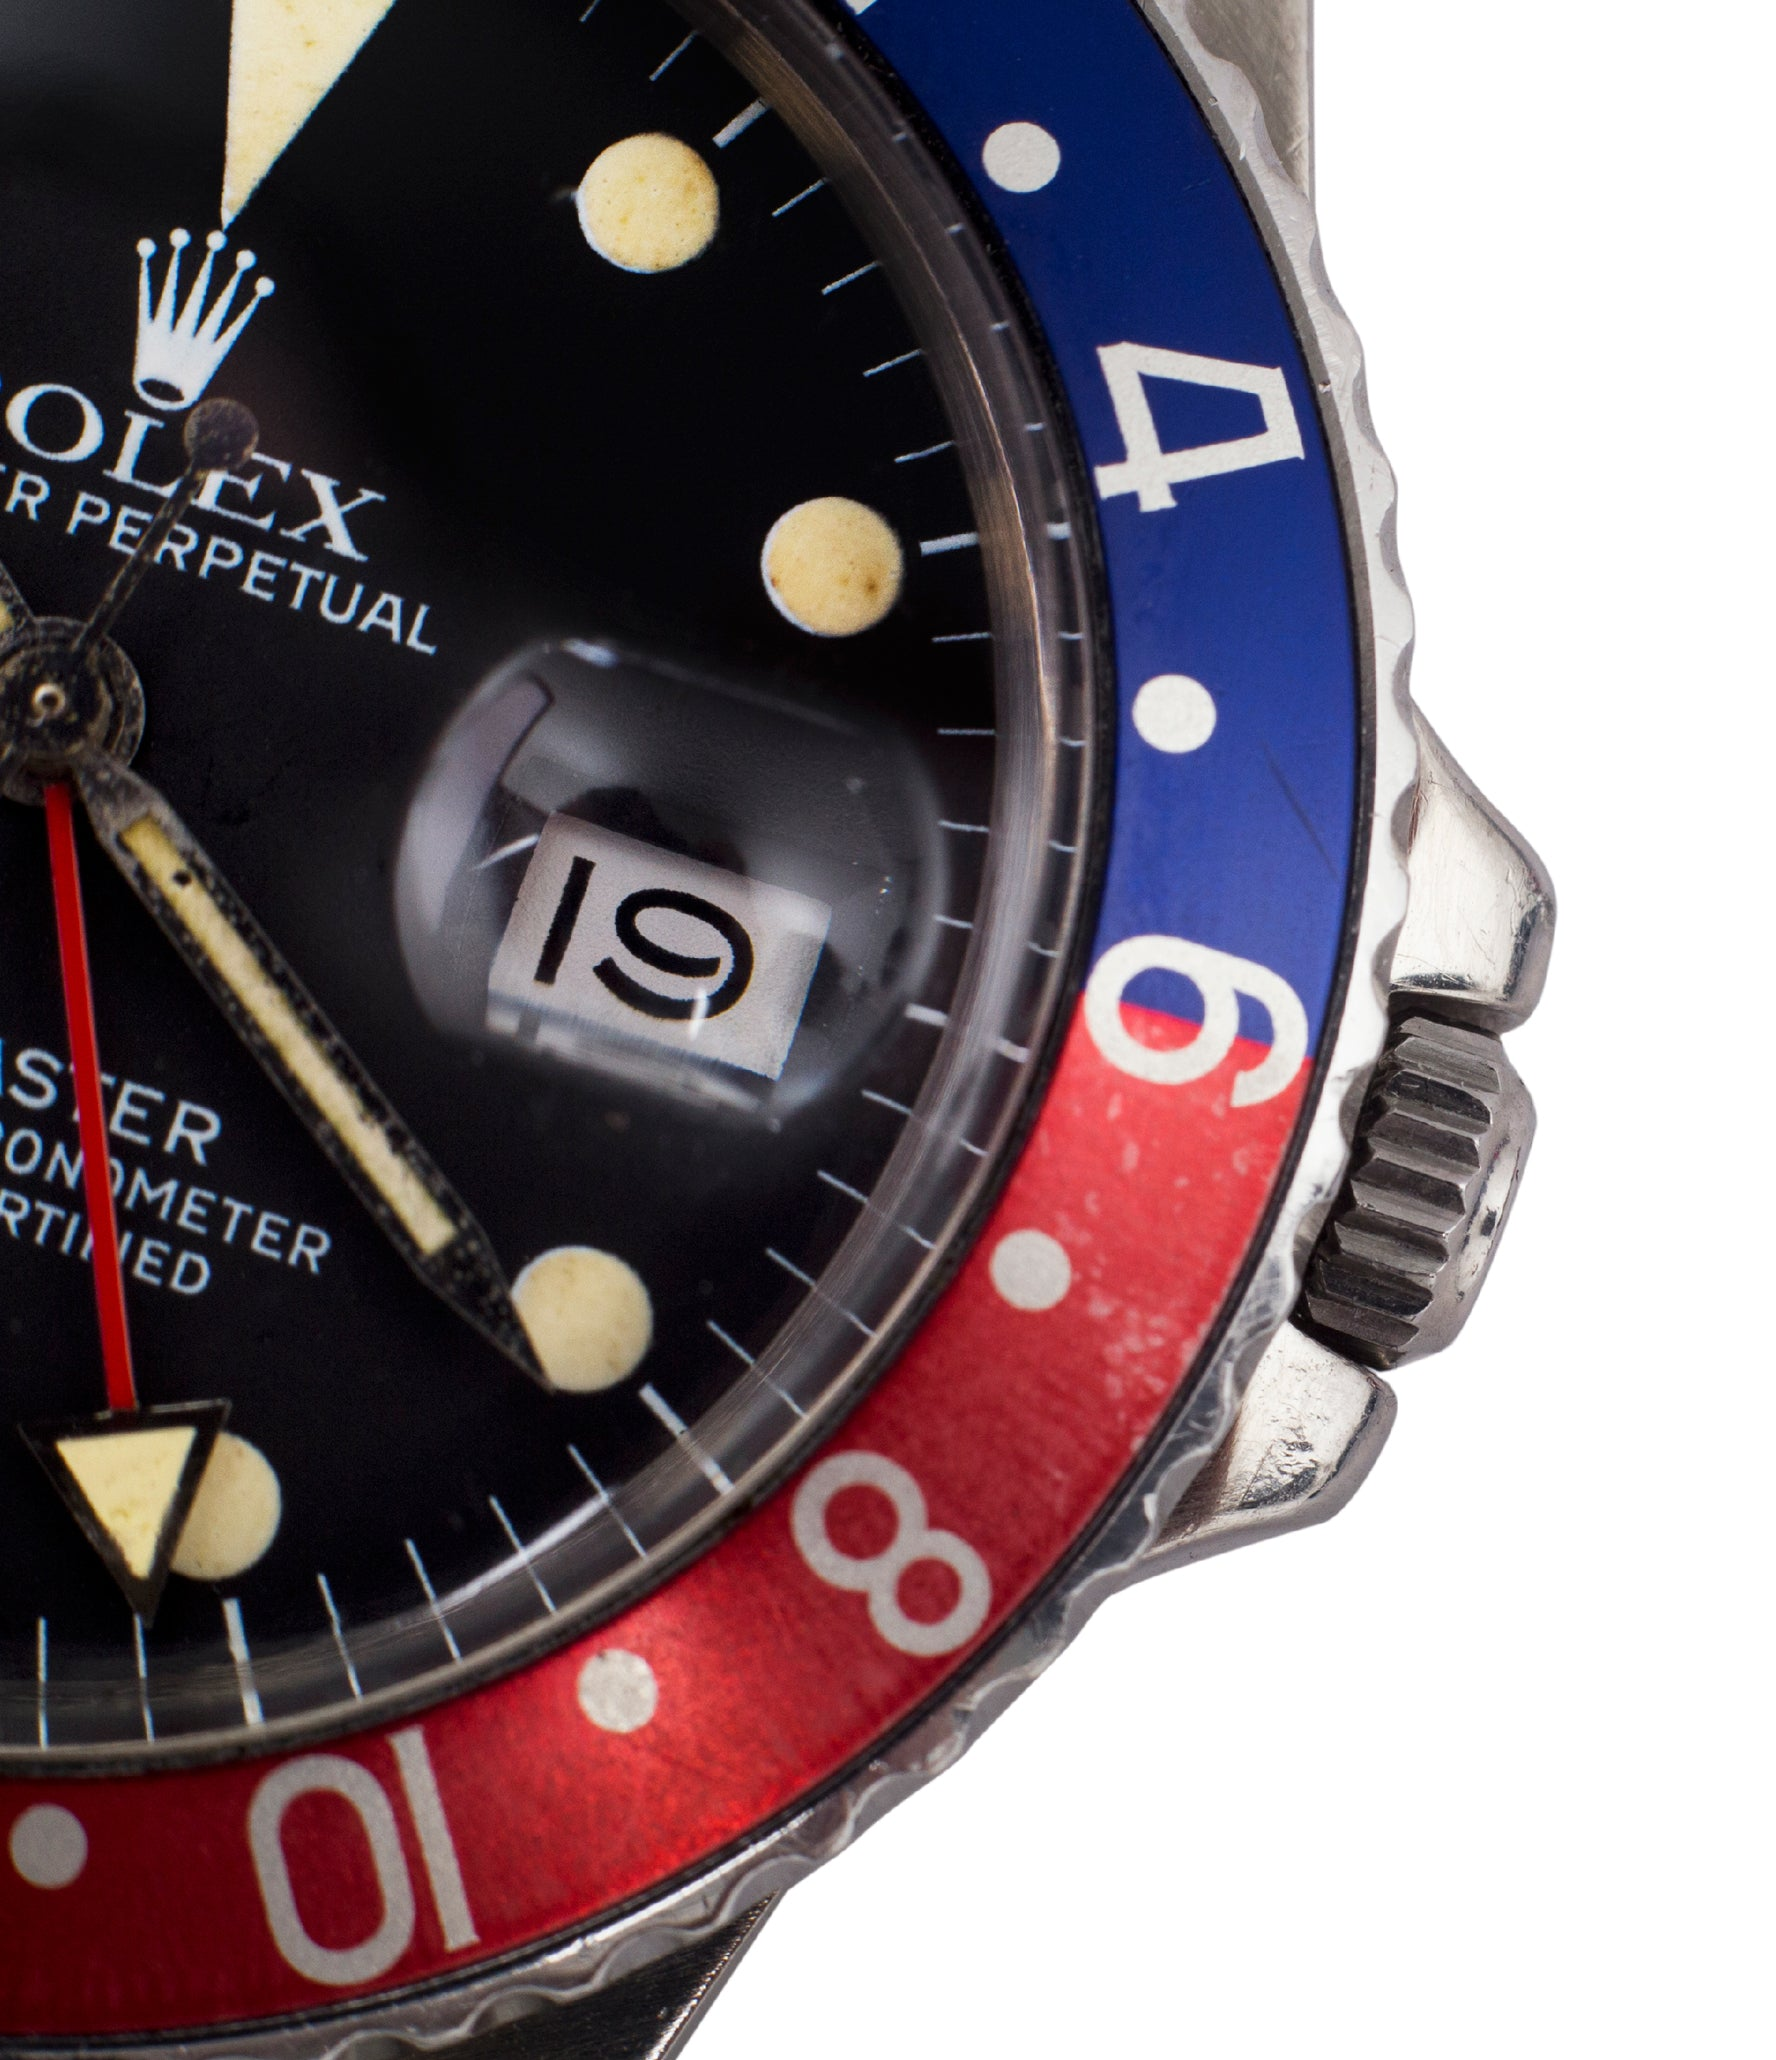 selling Rolex 16750 GMT-Master Pepsi bezel steel sport traveller watch for sale online at A Collected Man London vintage watch specialist